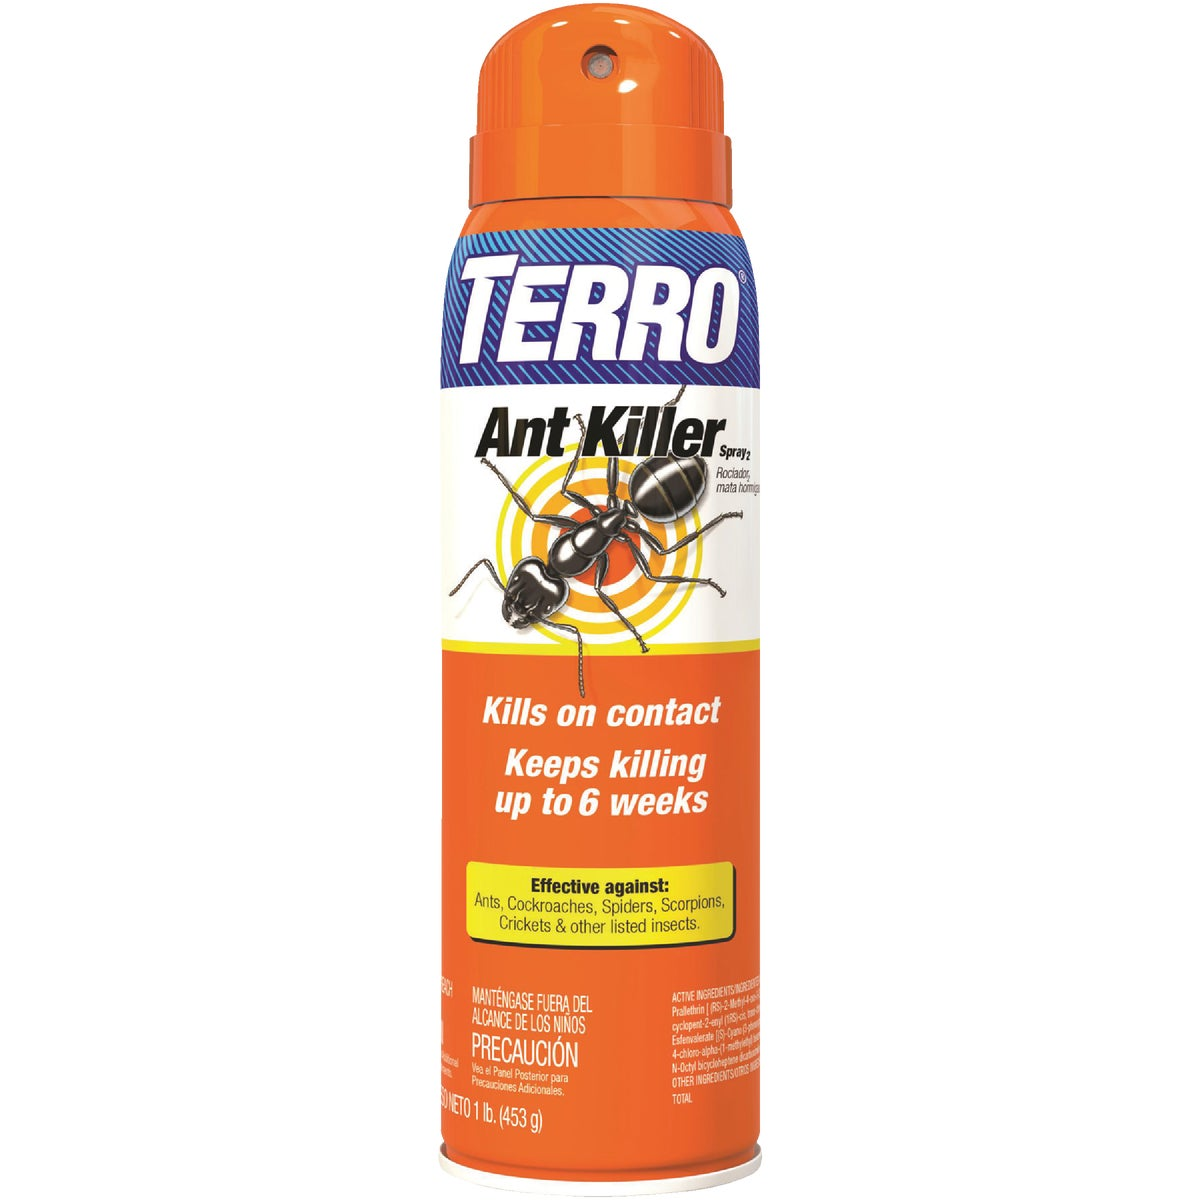 16OZ AEROSOL ANT KILLER - T401 by Woodstream Corp